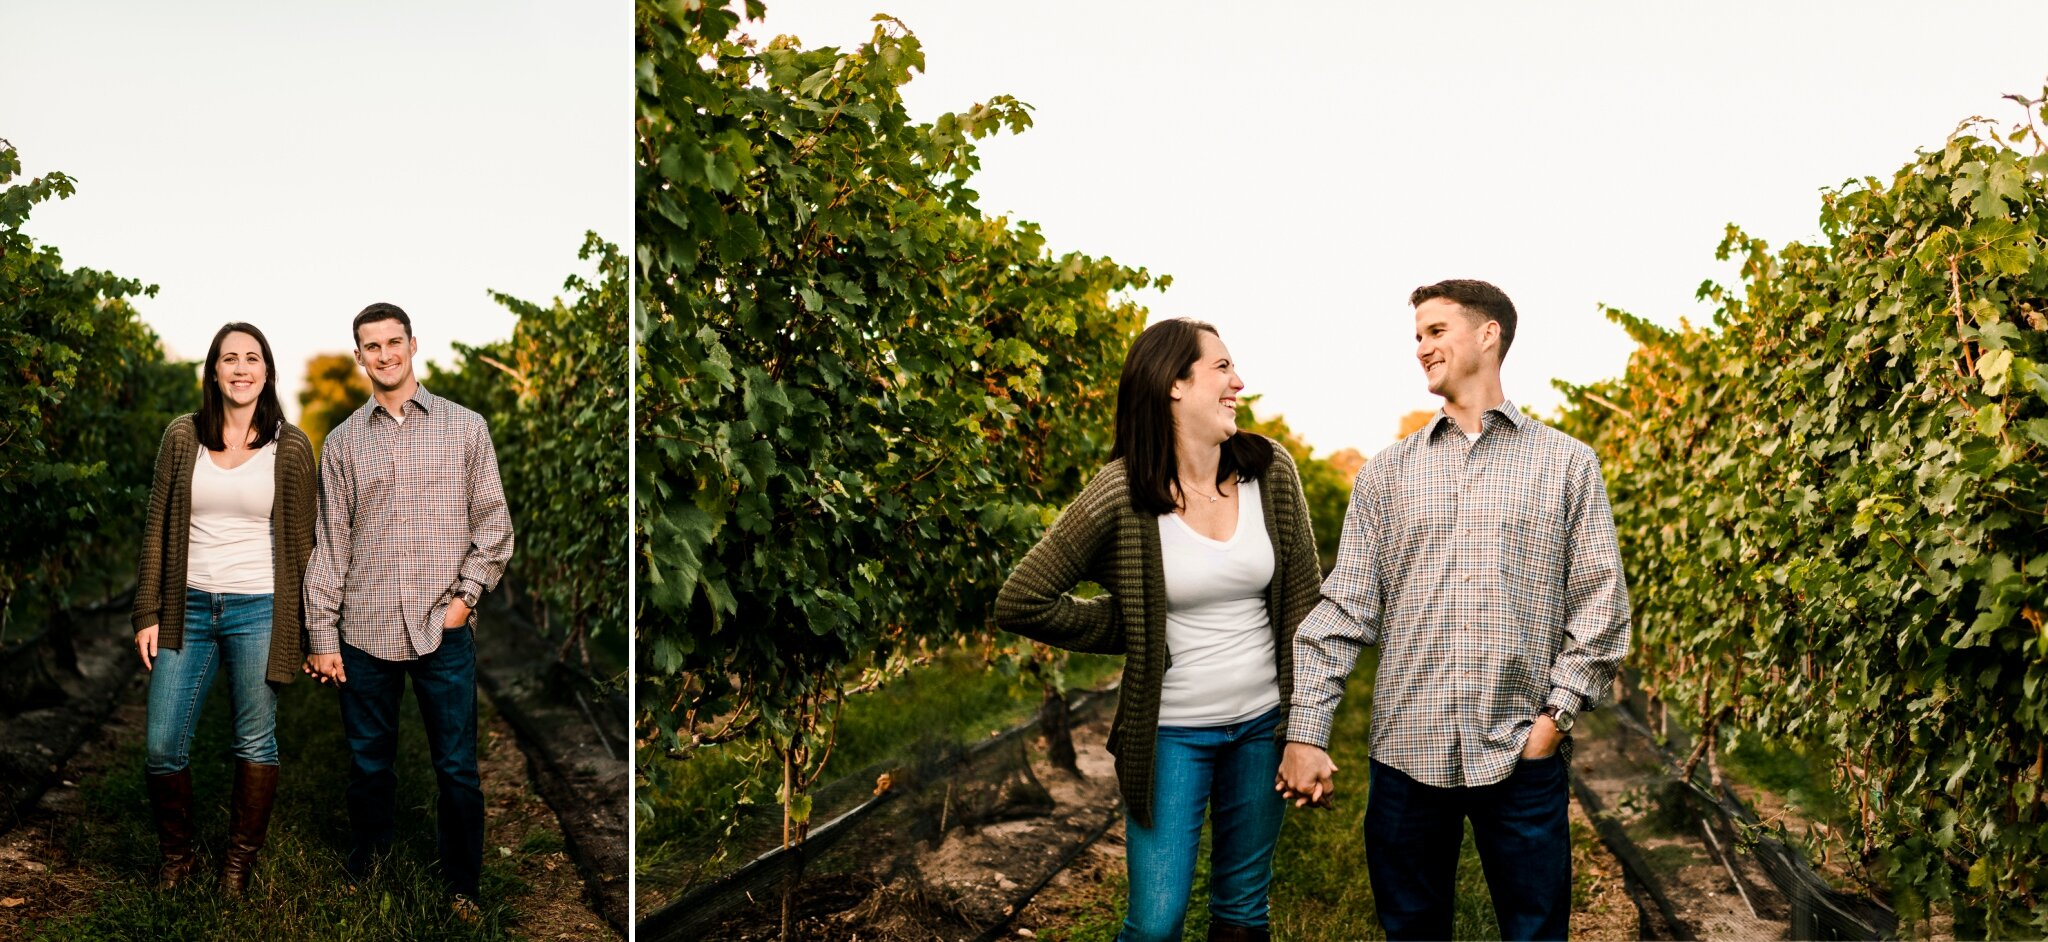 Carlin-White-Horse-Winery-Engagement-Photos-16.JPG